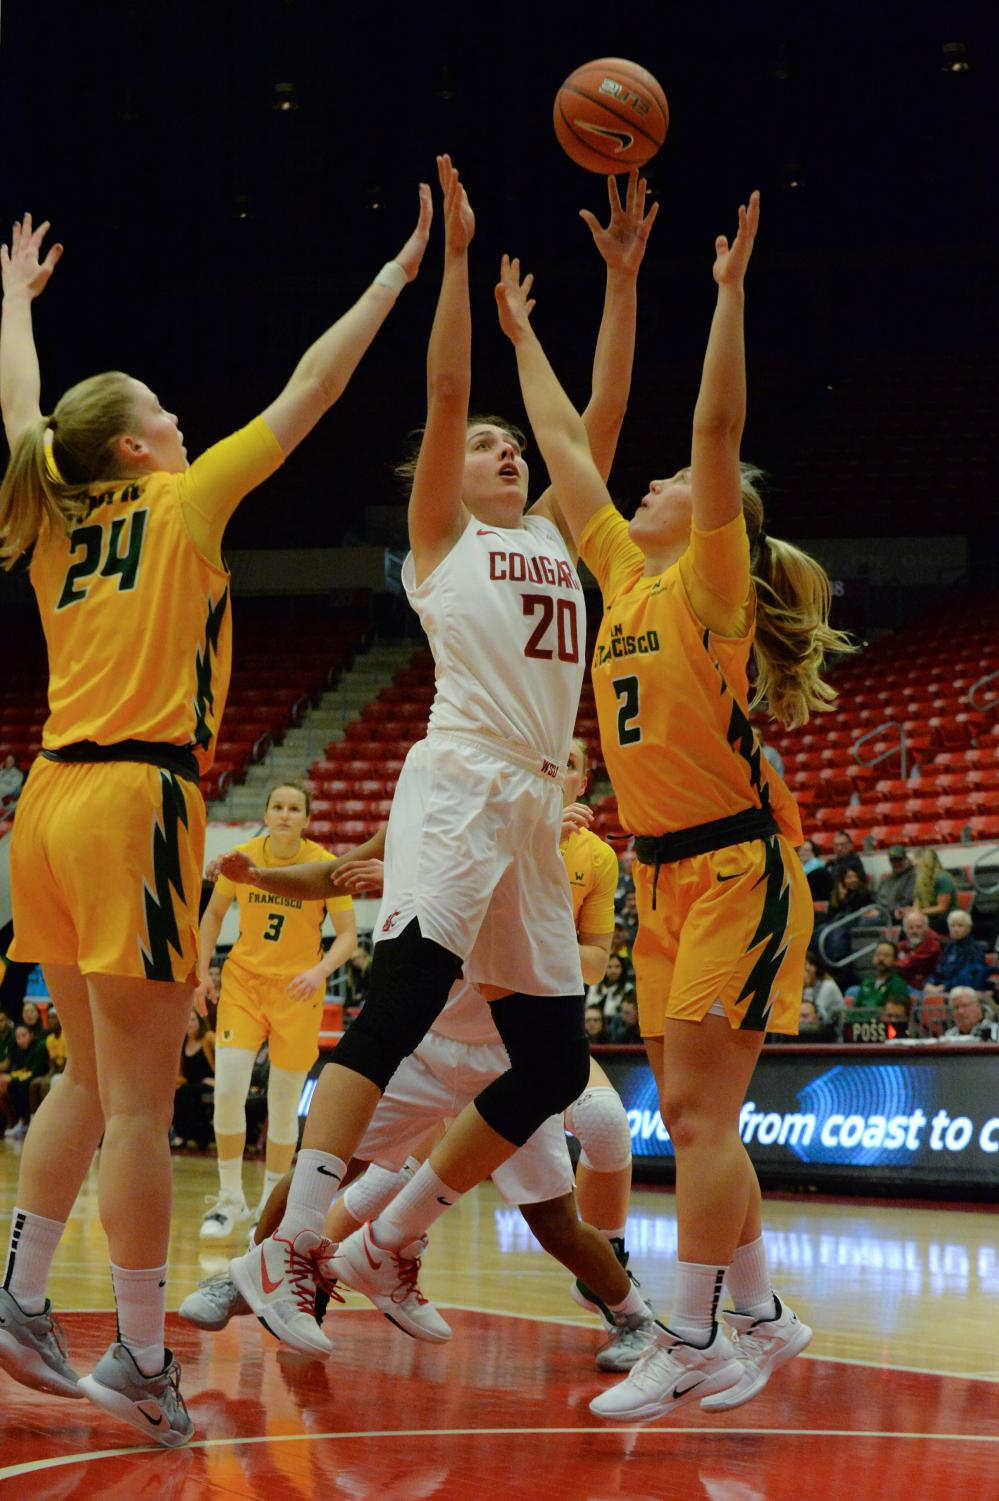 an Francisco players attempt to block WSU senior center Maria Kostourkova's shot during a game Nov. 29 at Beasley Coliseum.